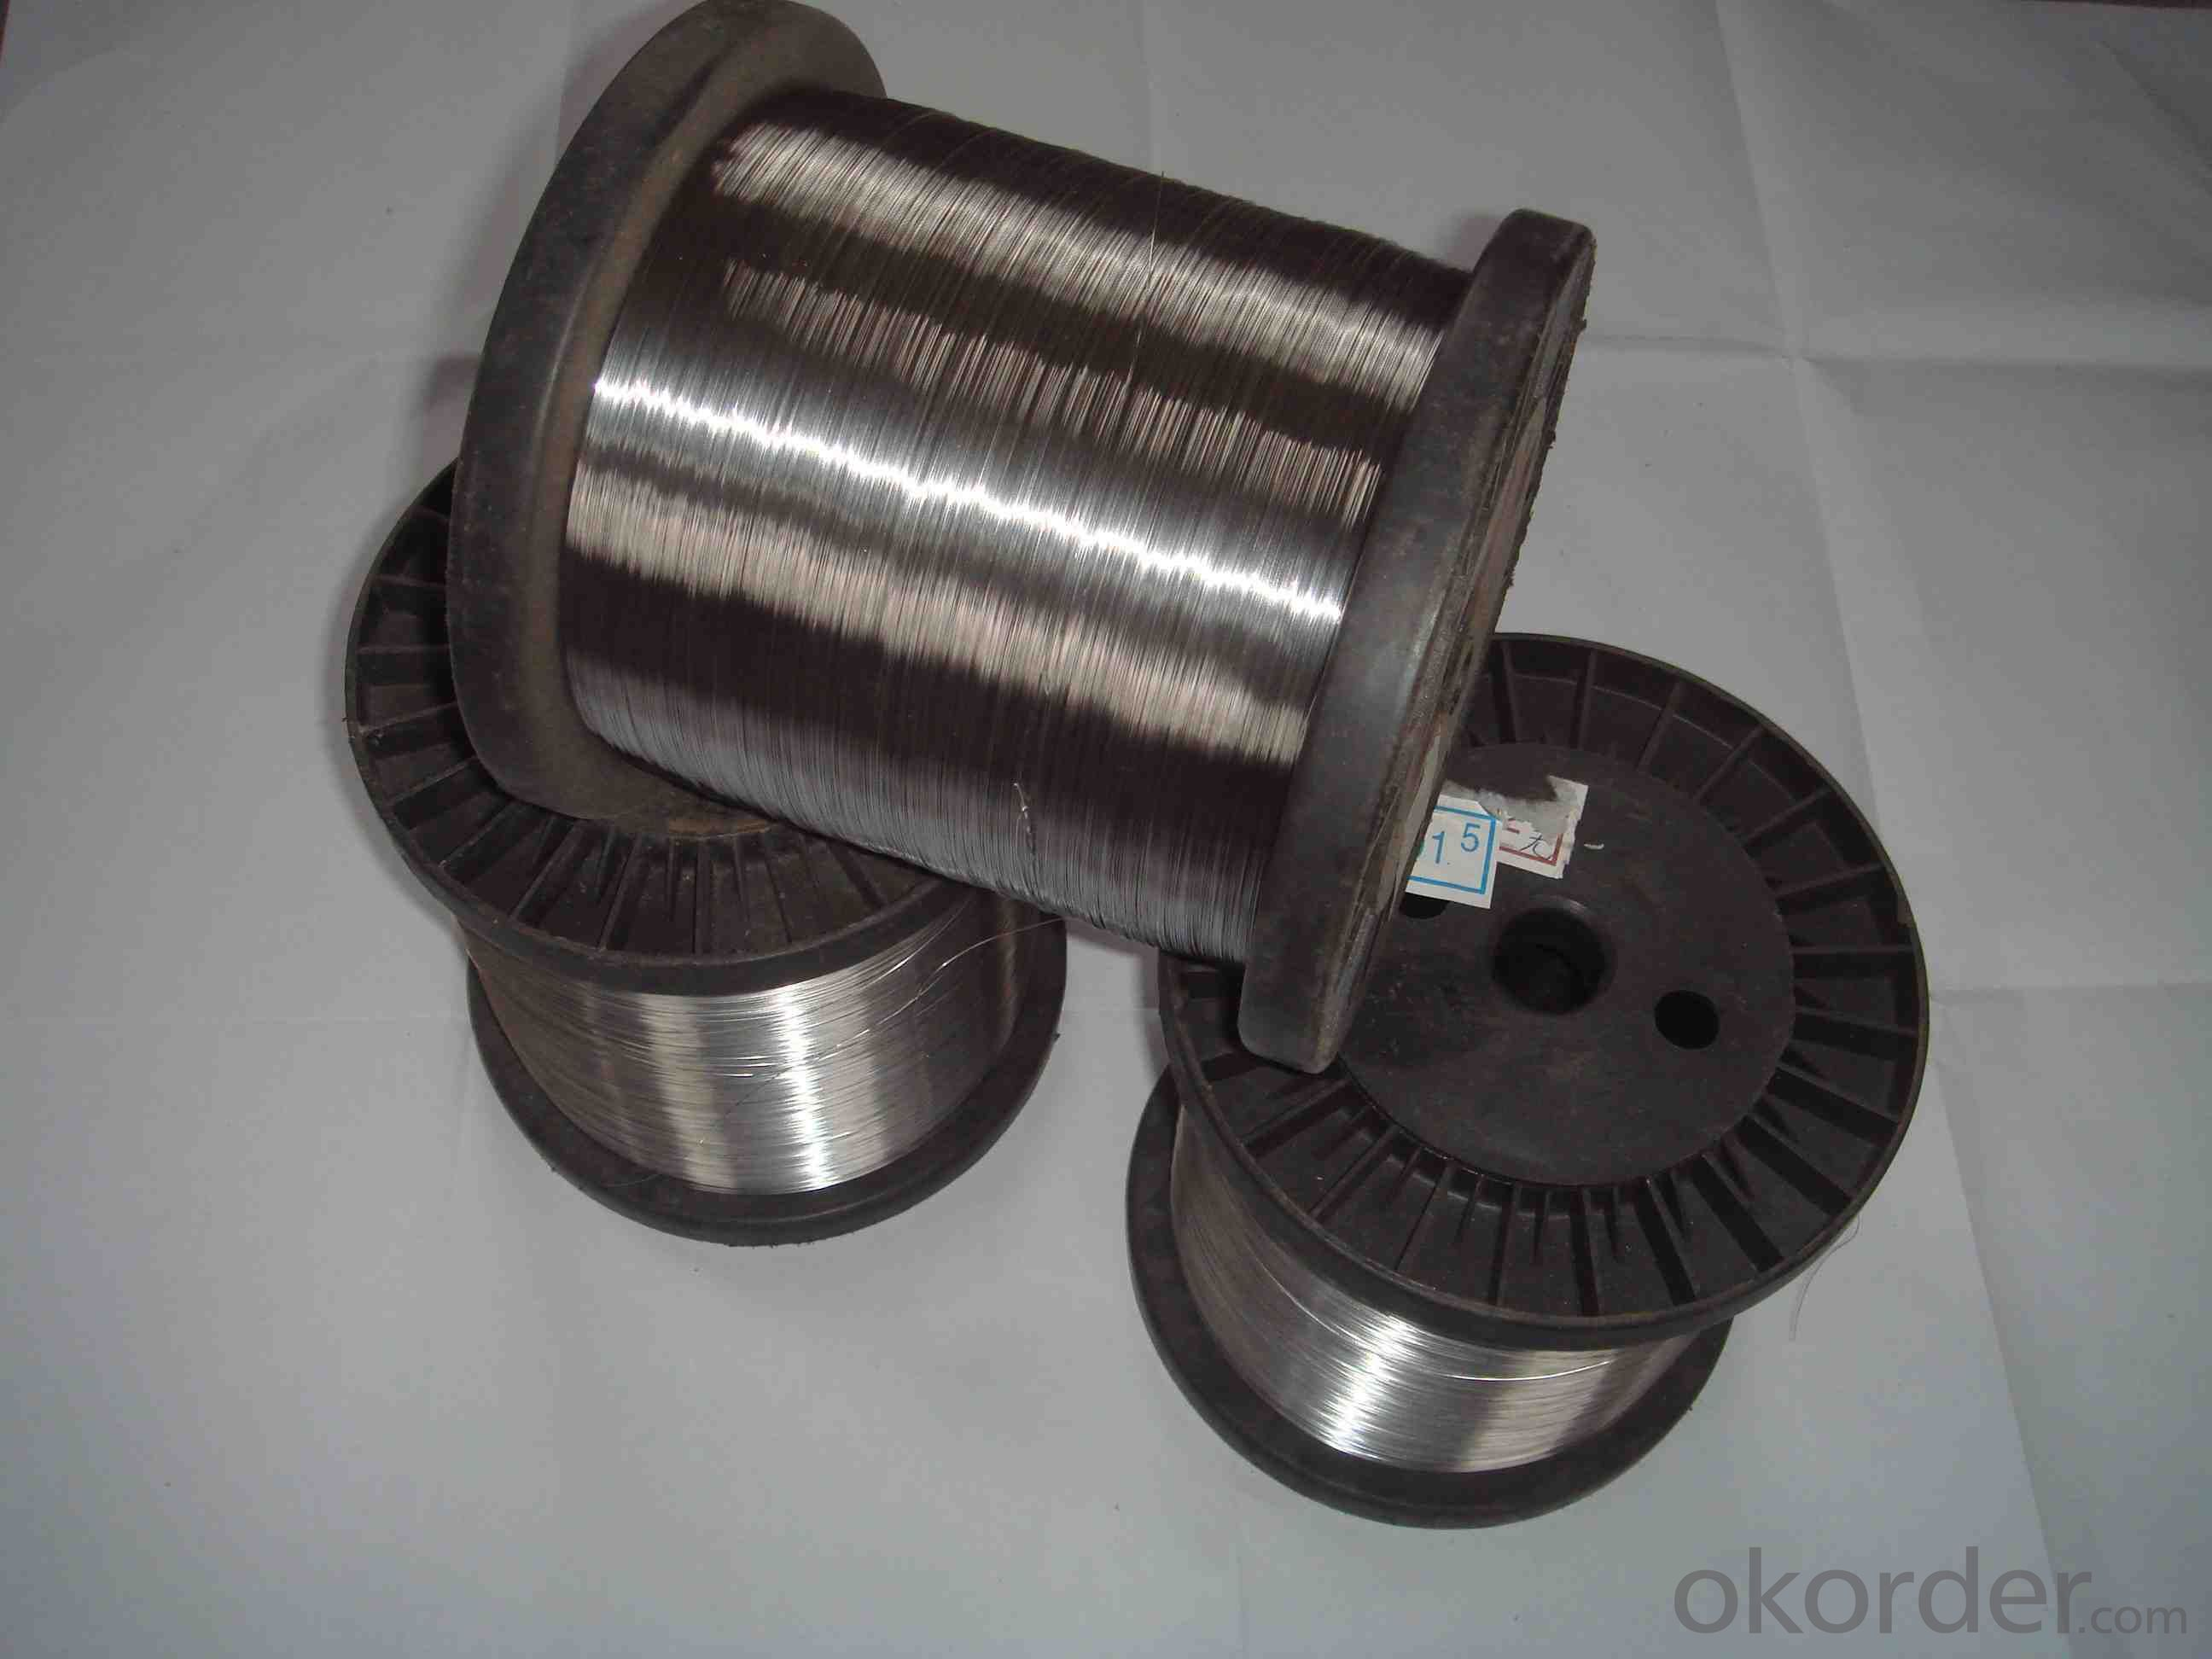 302 Stainless Steel Spring Wire Hot Sale and High Quality